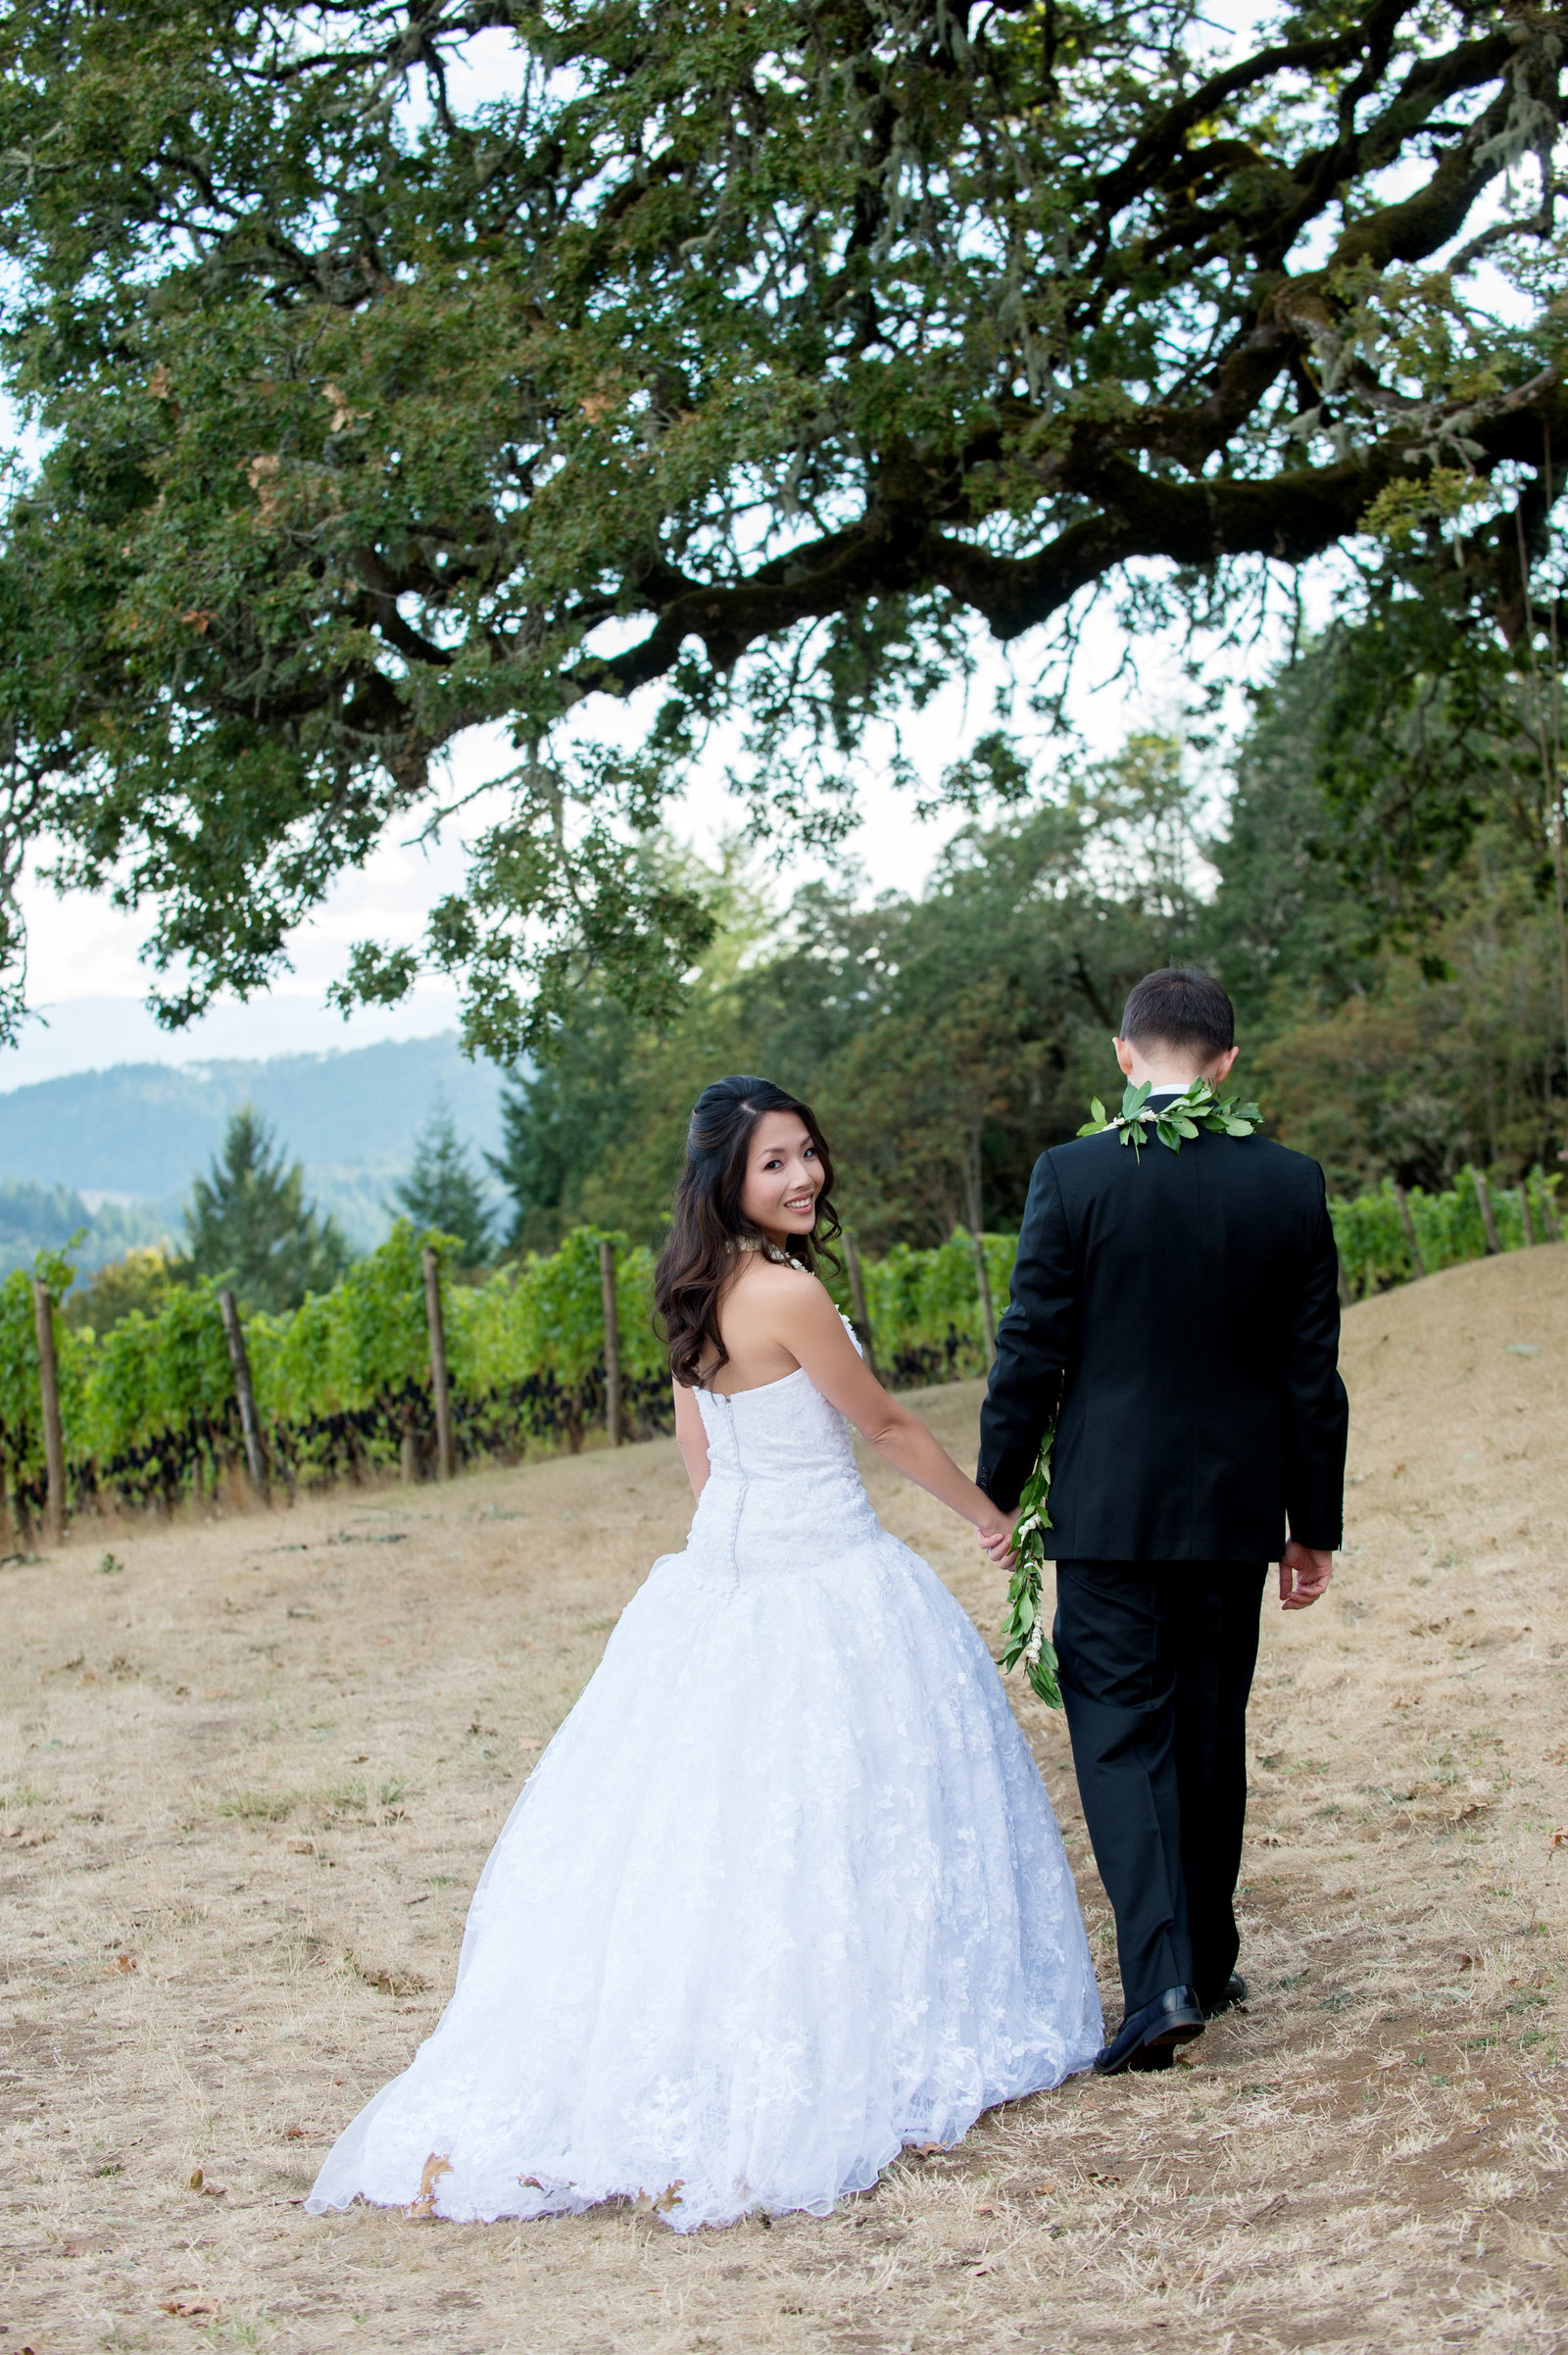 Crystal Genes Photography YOUNGBERG HILL WEDDING_150903-173110